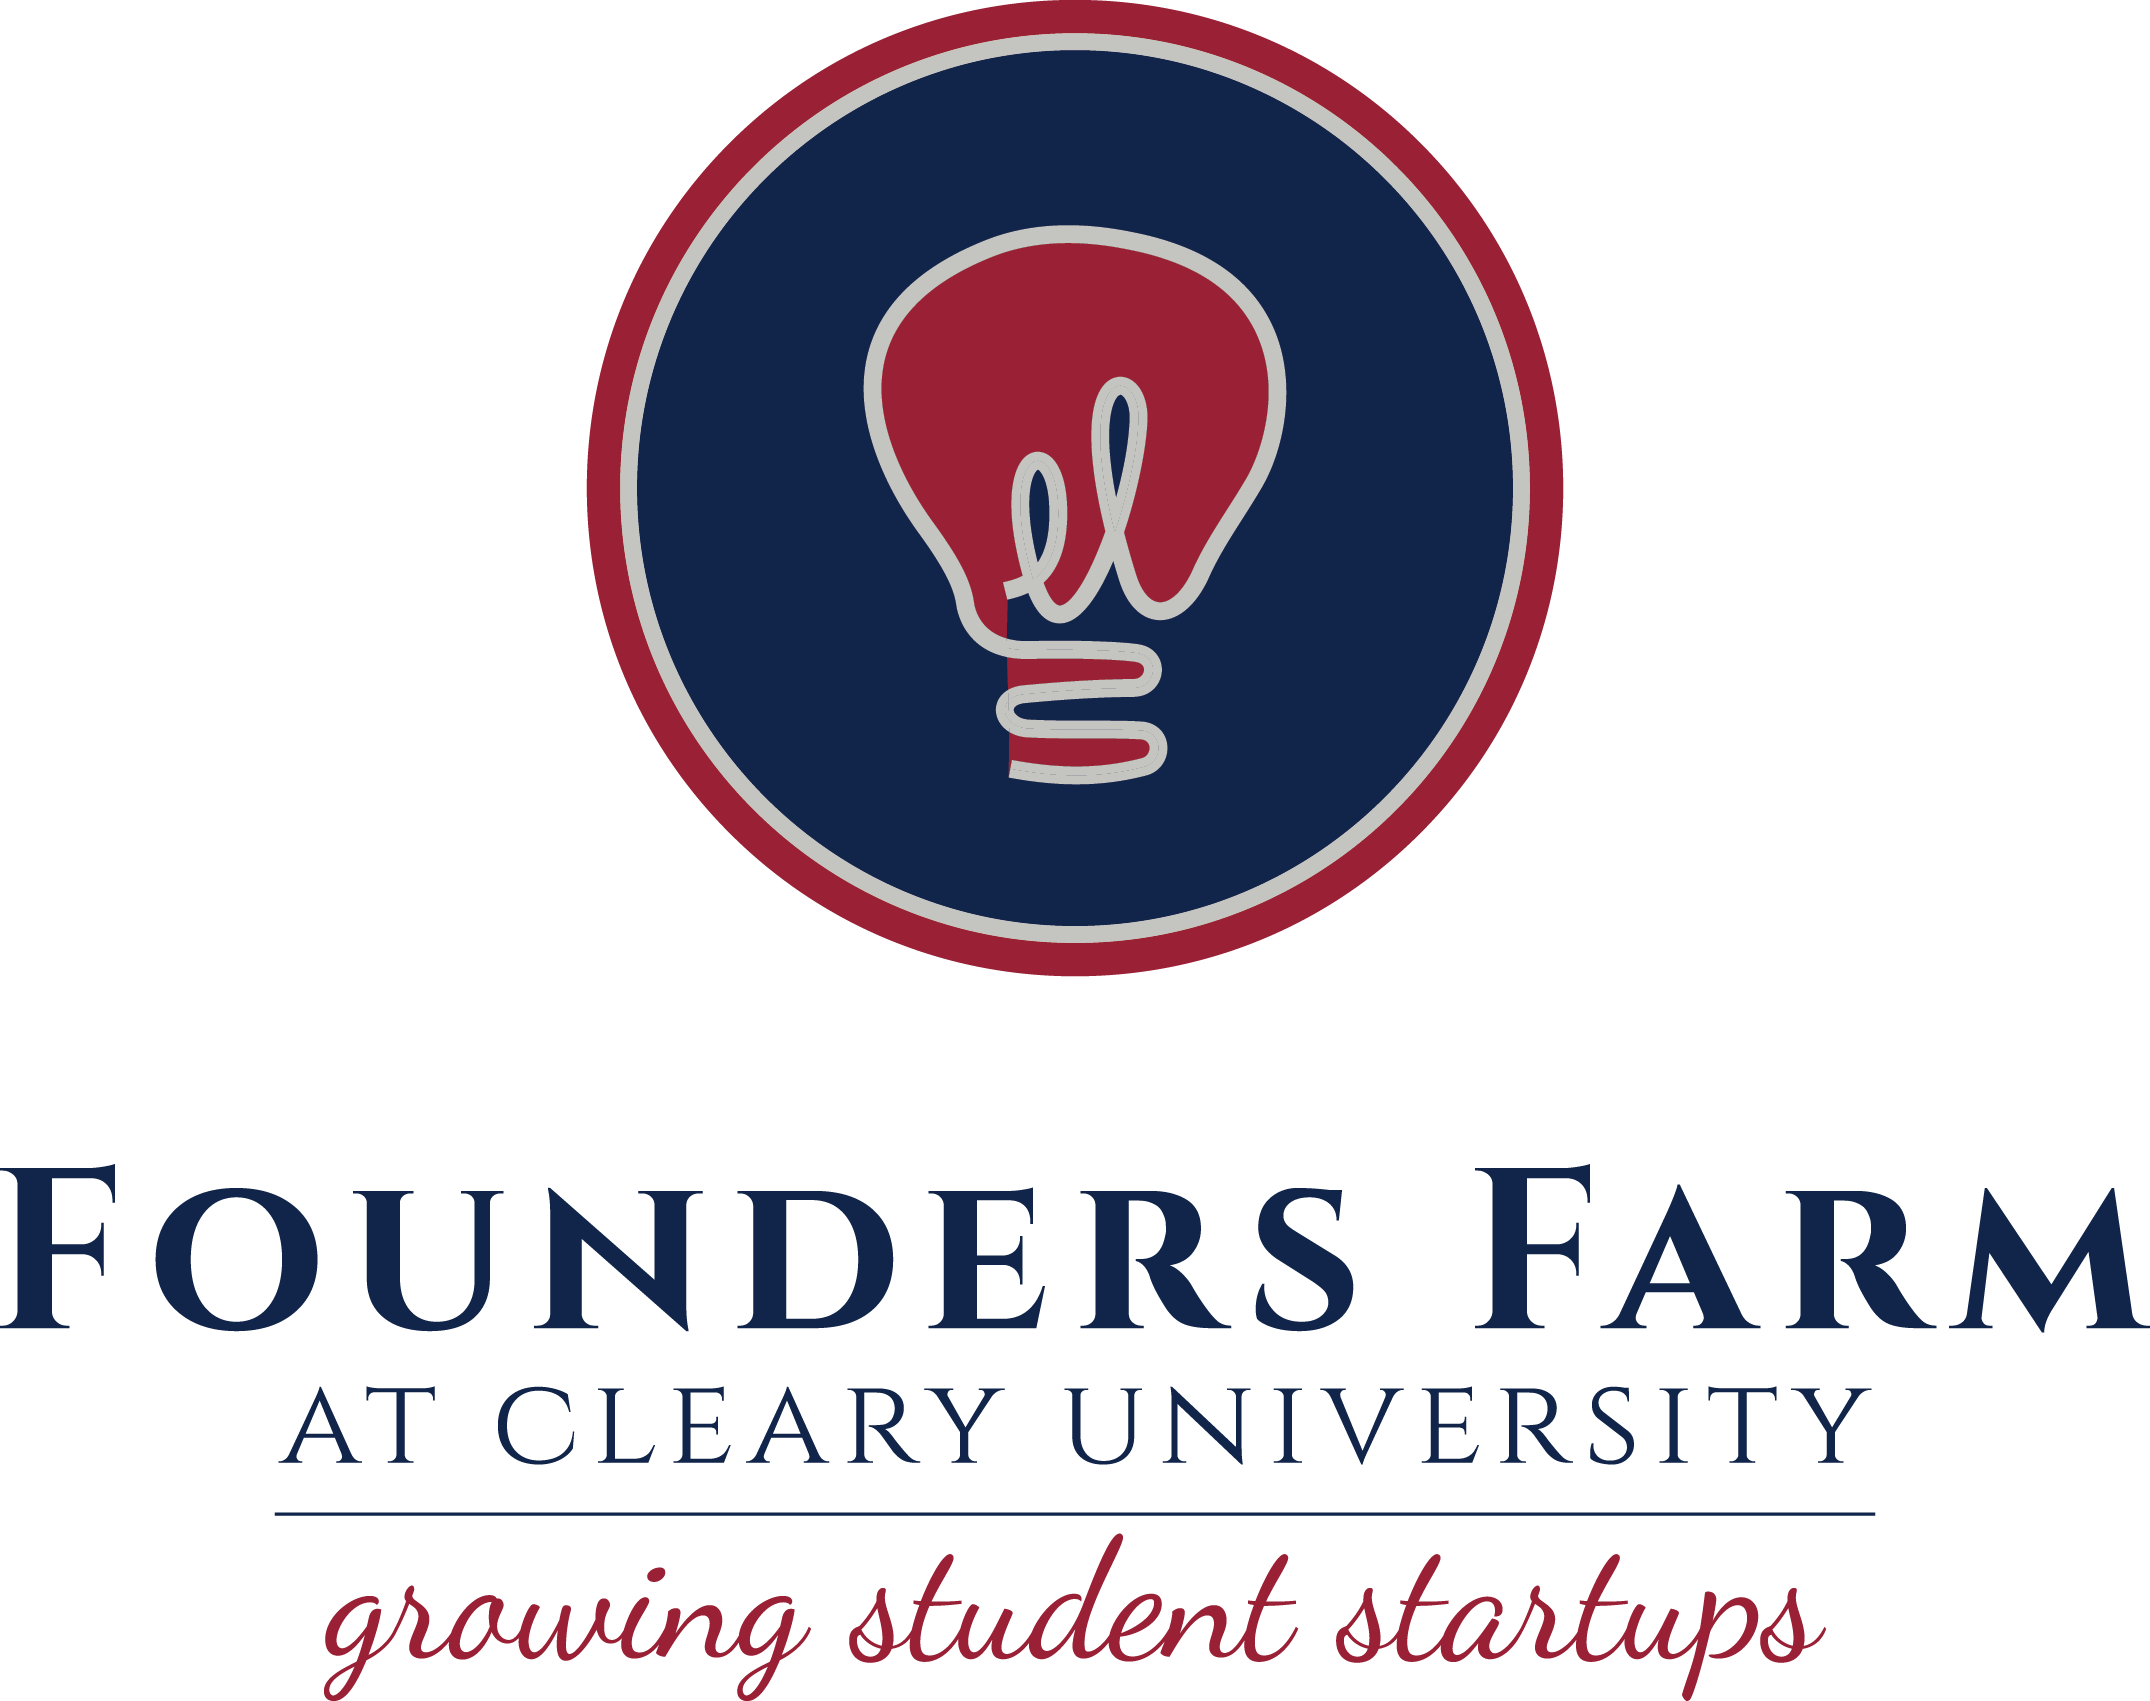 Love student startups? Design a fresh, new logo for Founders Farm